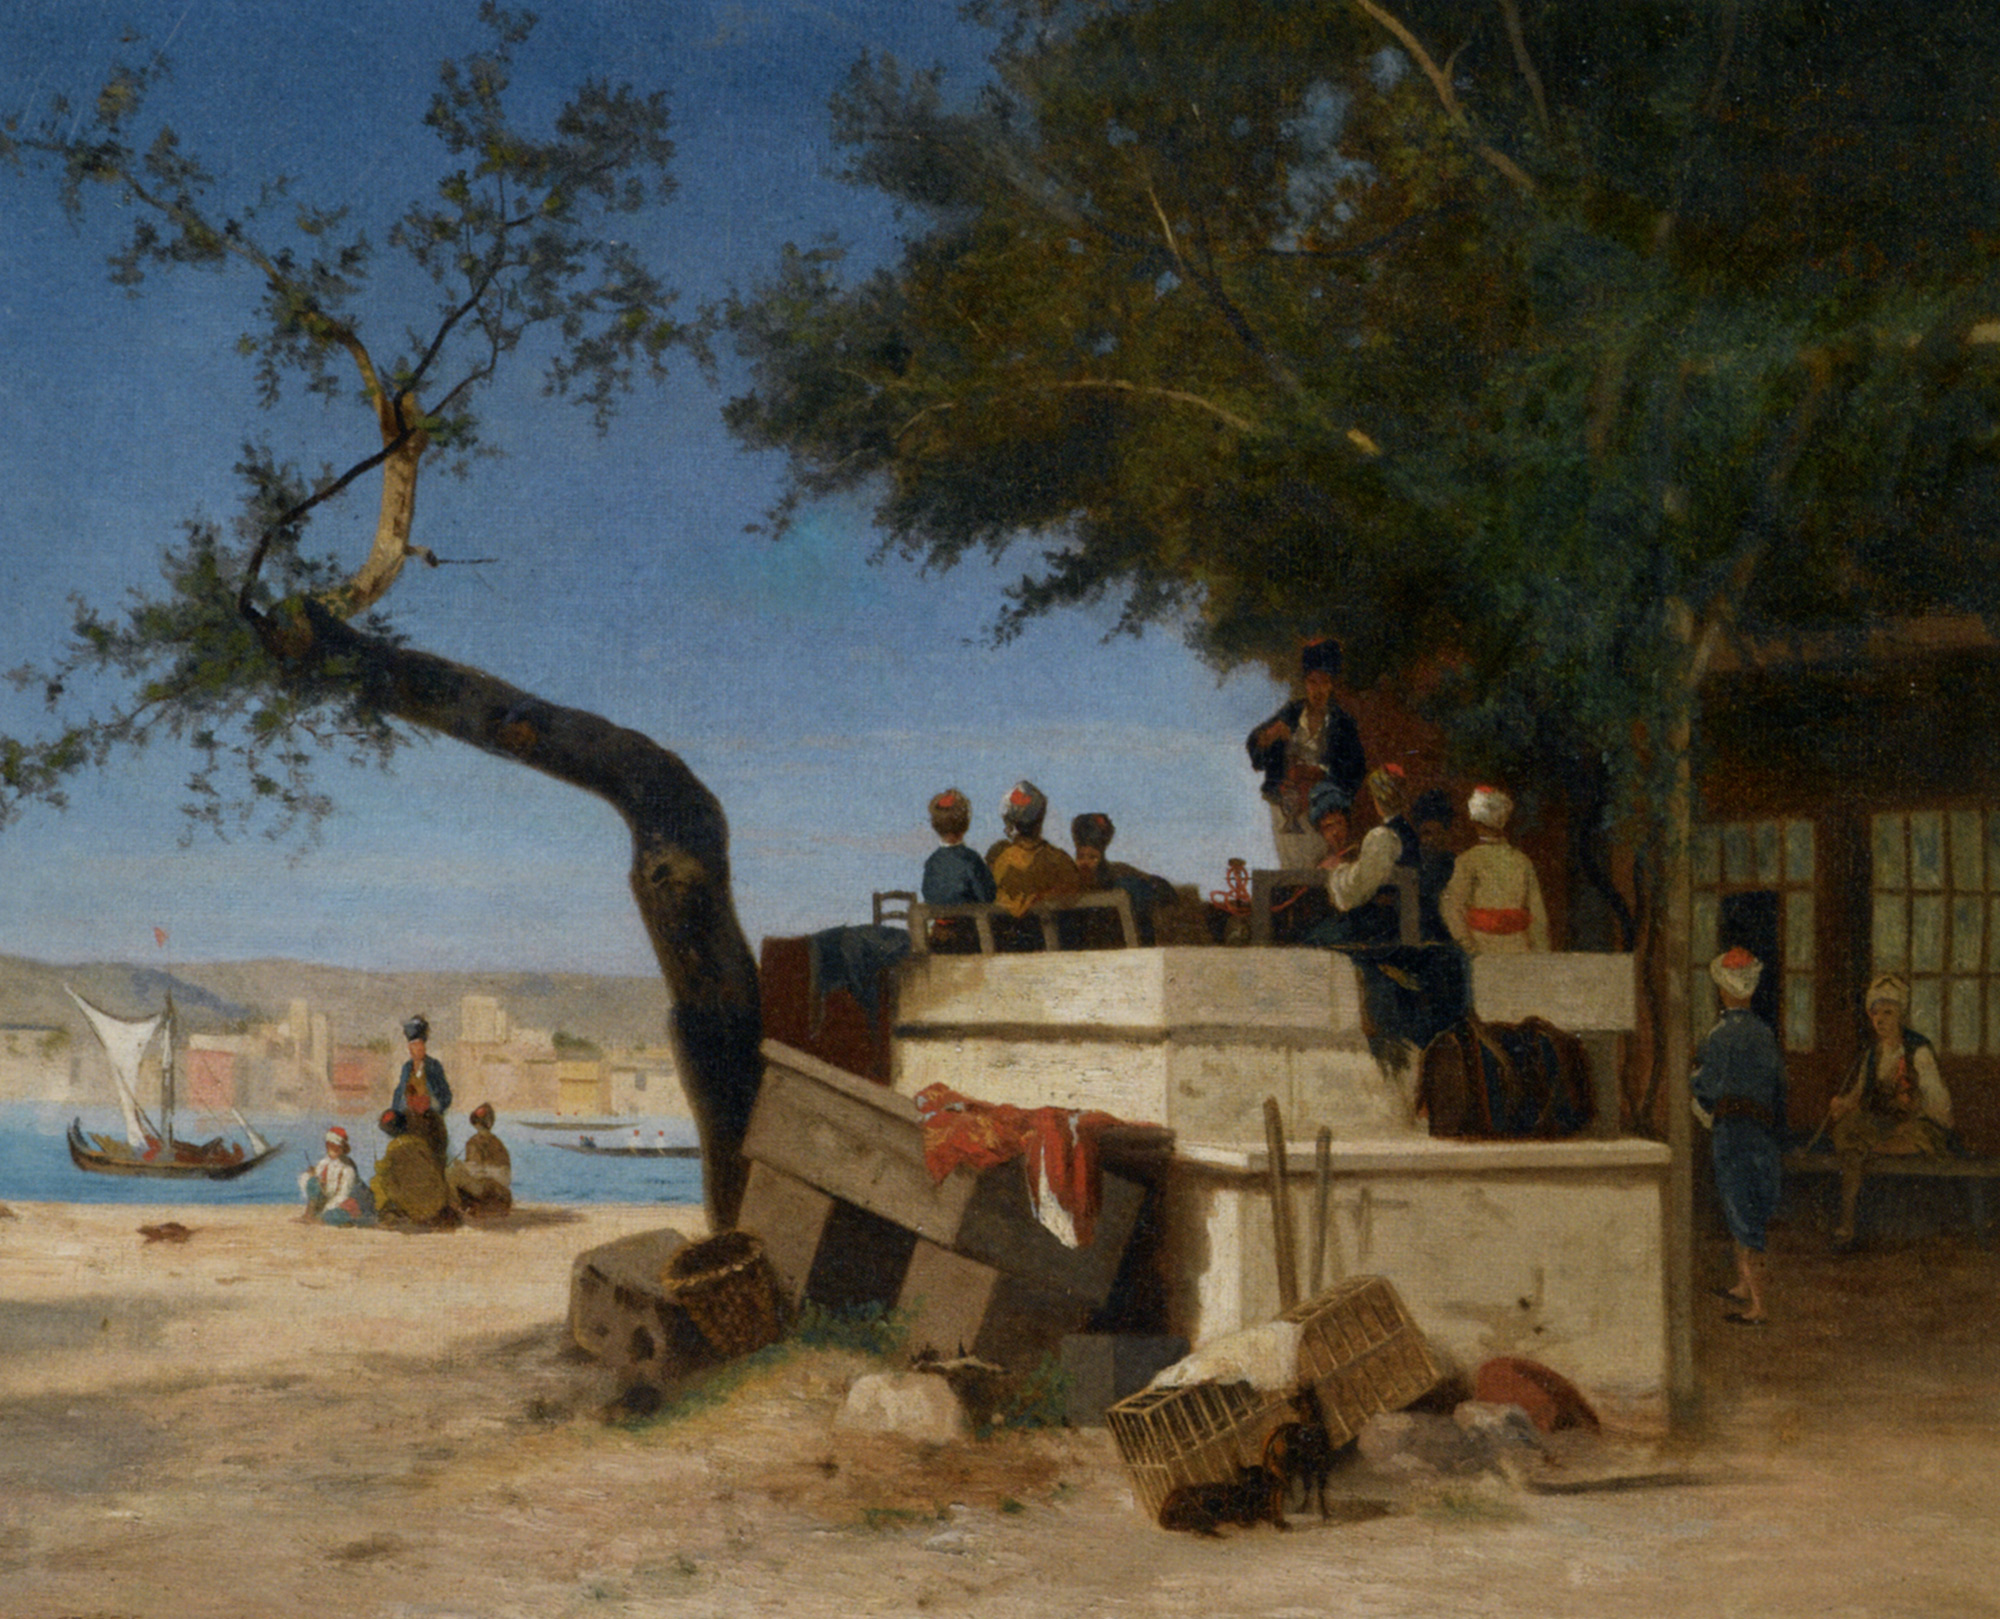 An Eastern Cafe :: Charles Theodore Frere - scenes of Oriental life (Orientalism) in art and painting ôîòî